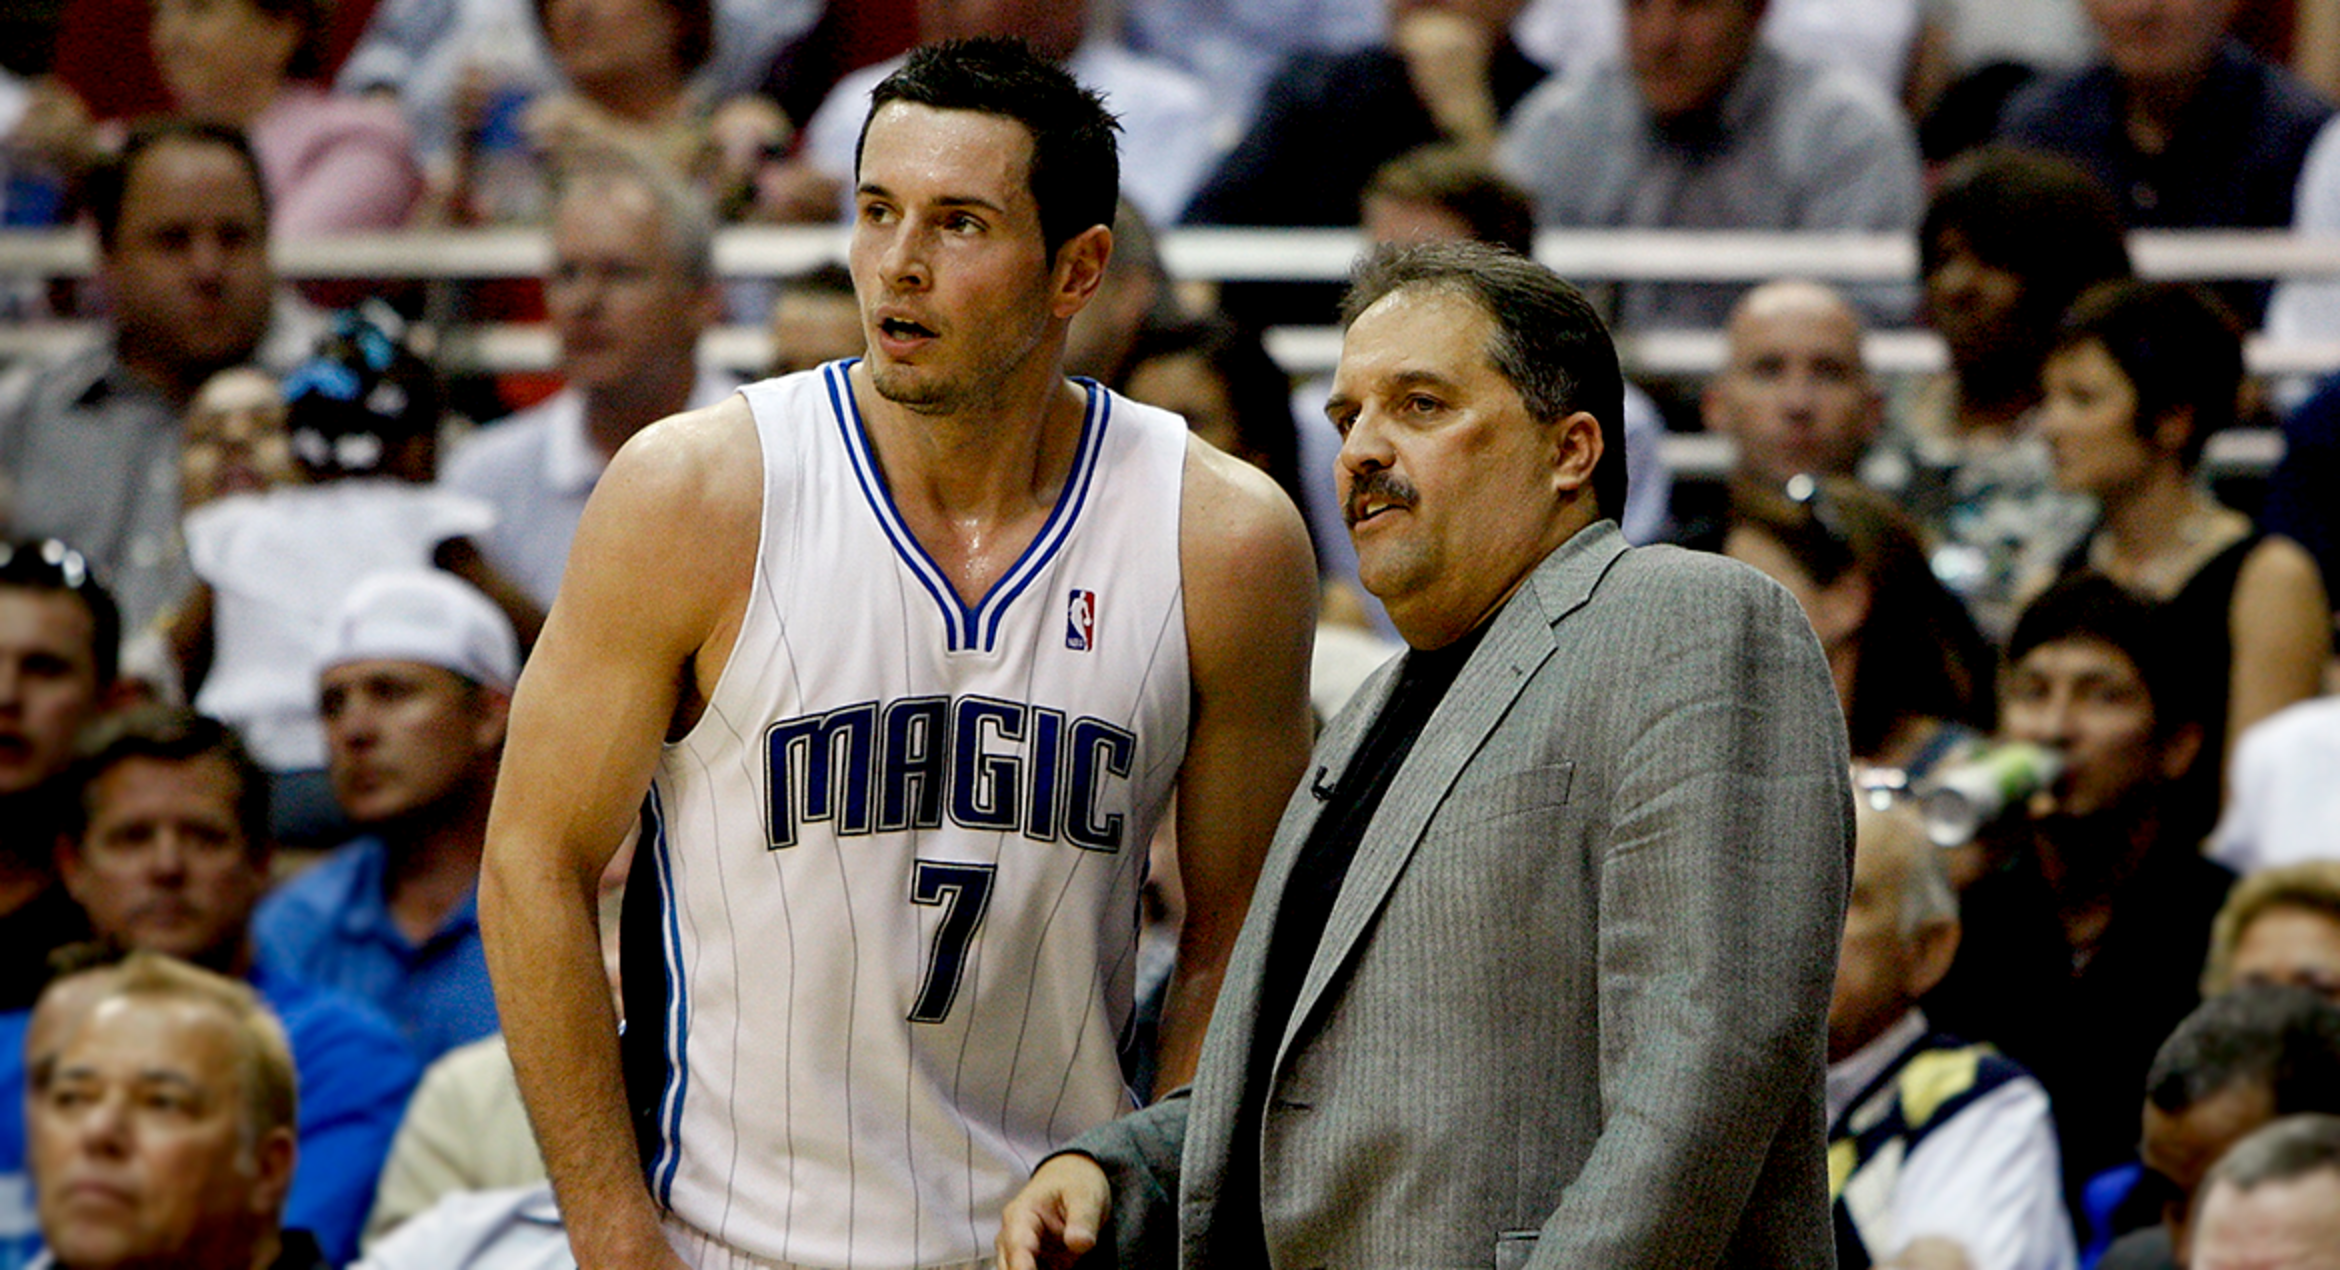 Image of Former Coach Stan Van Gundy of the Orlando Magic speaks to J.J. Redick during their game against the Miami Heat at Amway Arena on October 12, 2007 in Orlando, Florida.